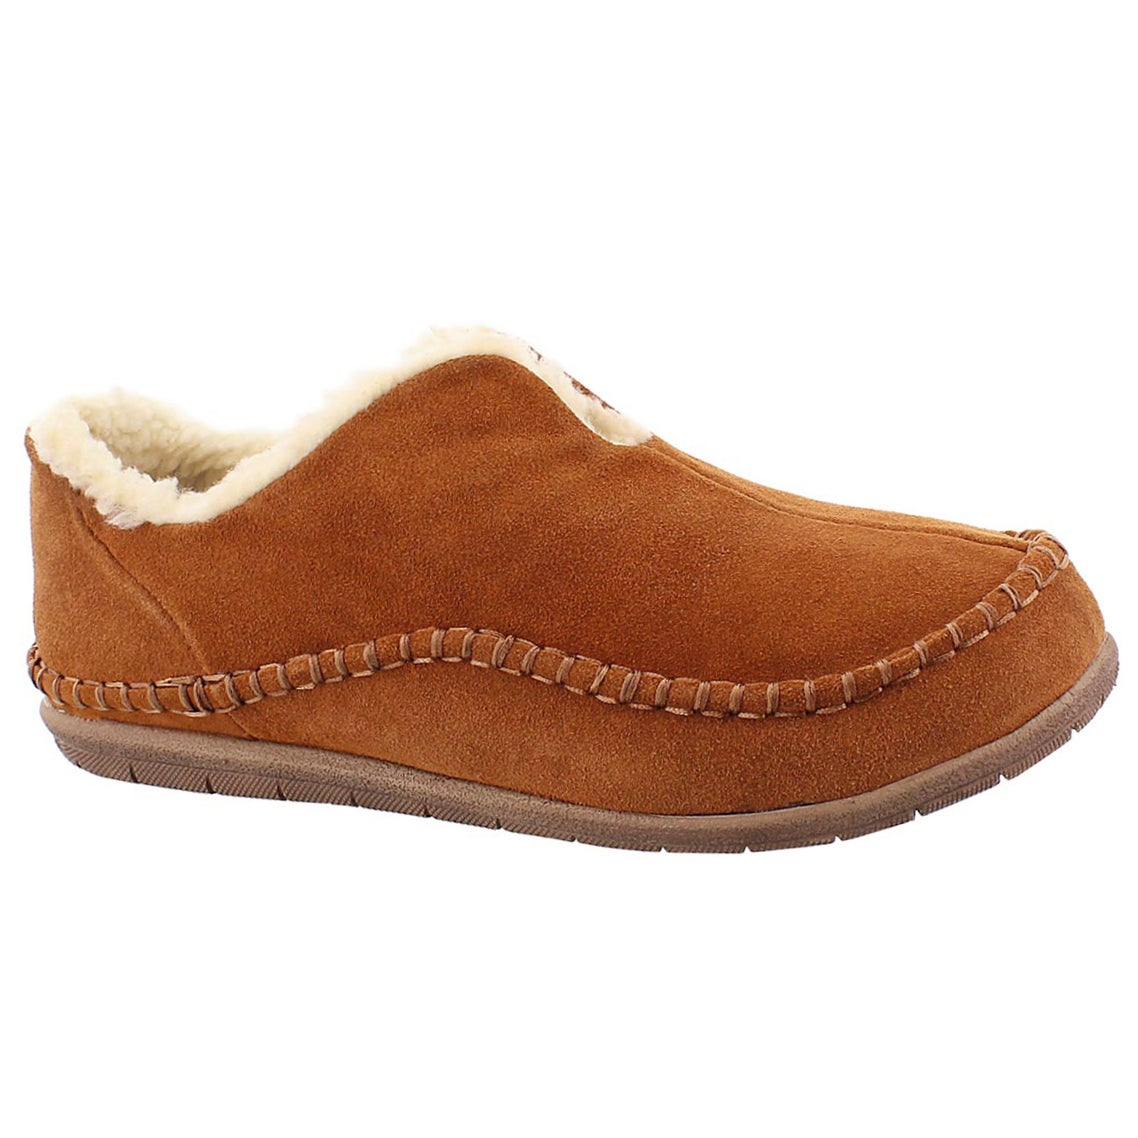 Men's LINCOLN spice closed back slippers